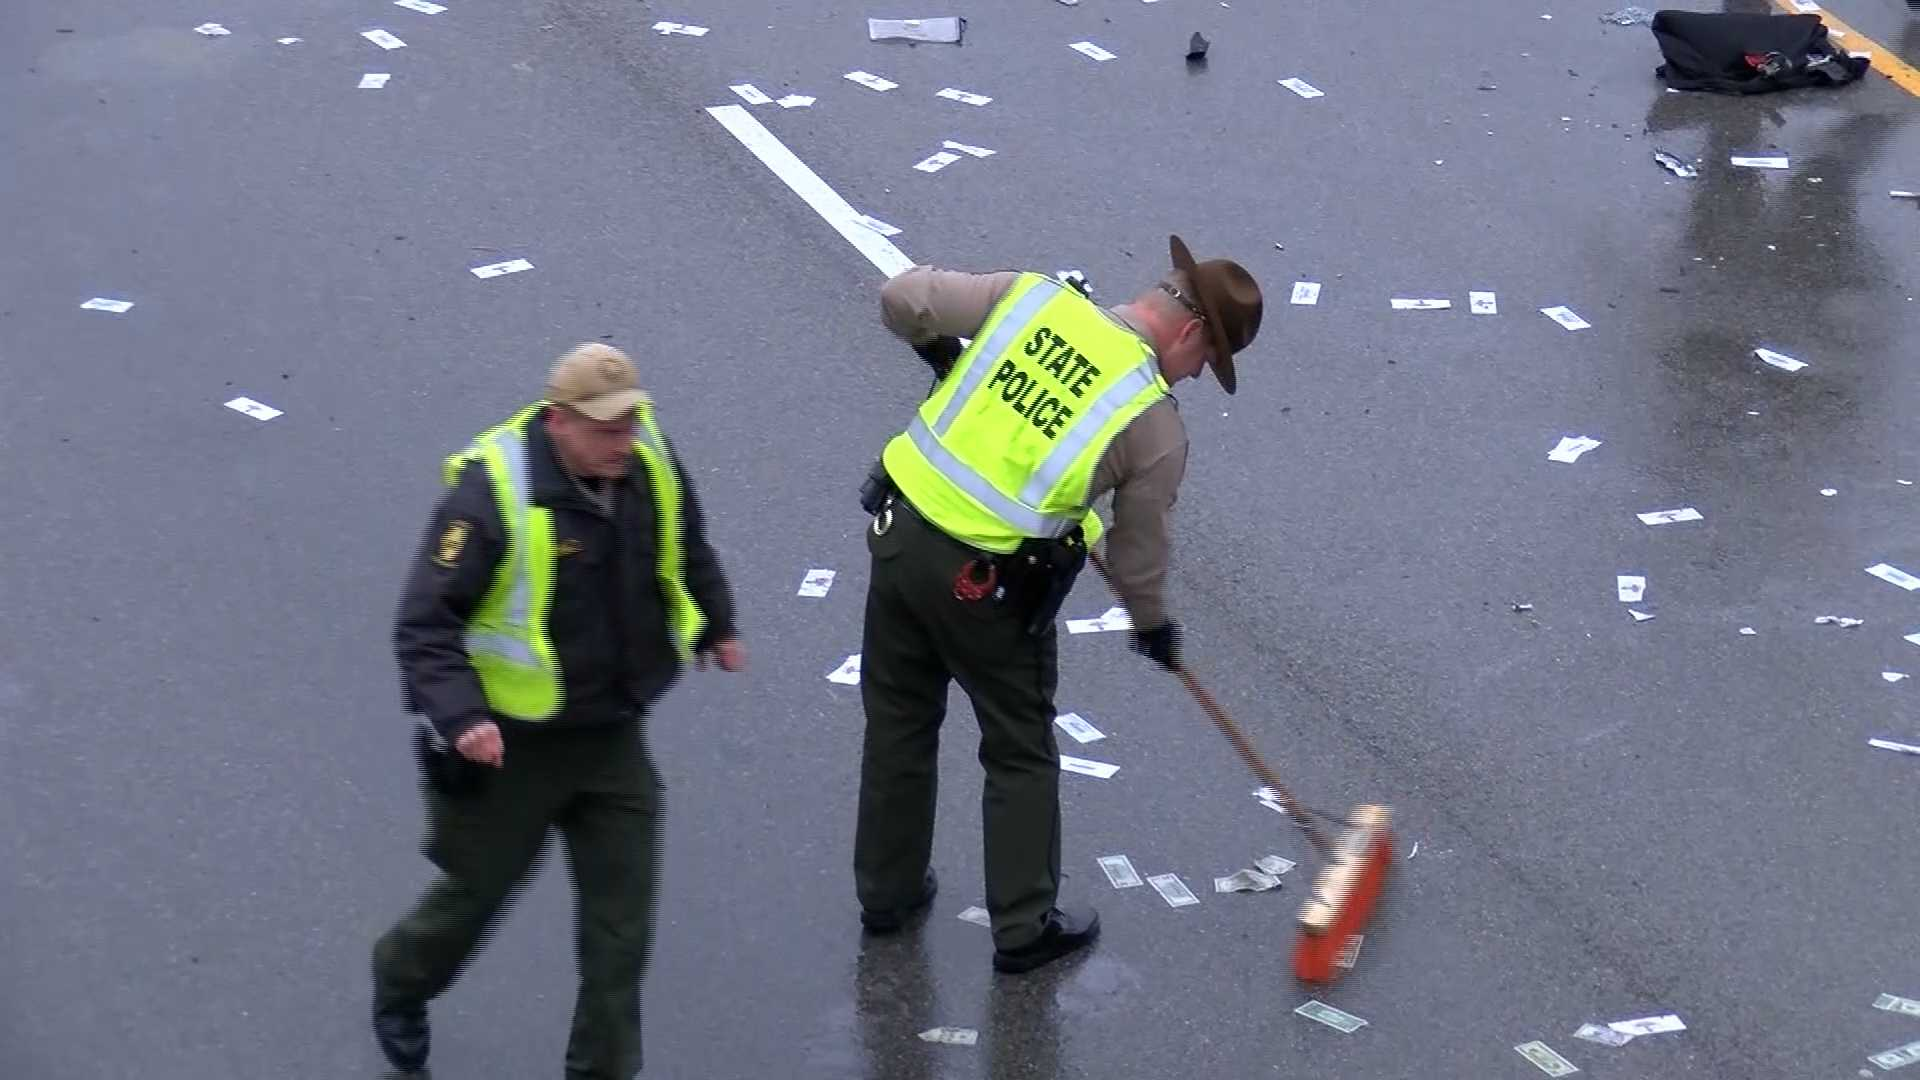 Illinois highway littered with cash after car accident - Sacramento